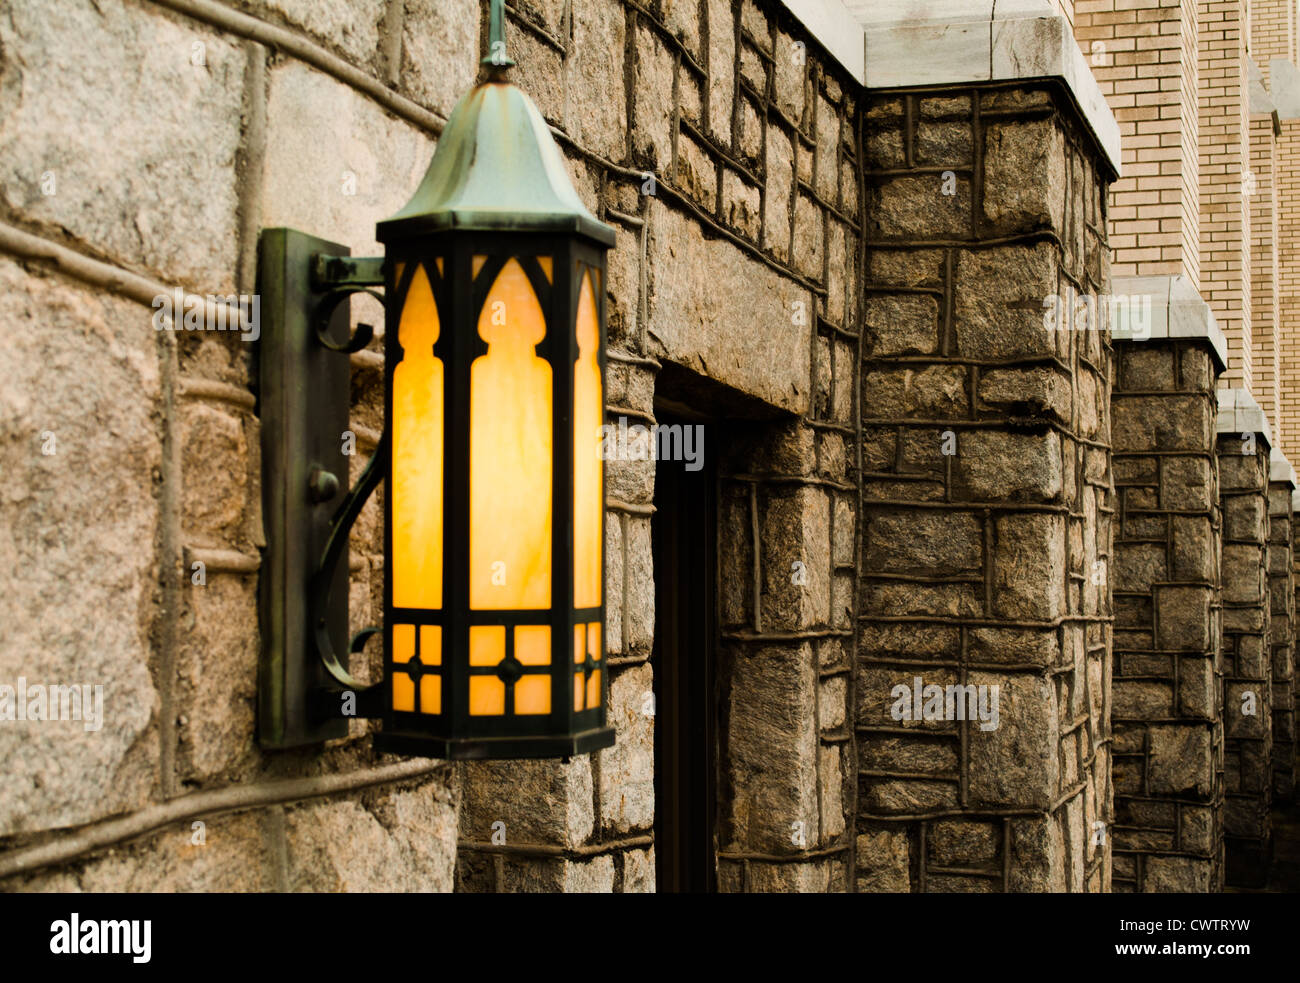 Lamp Wall Street Church Alley Light Bricks Yellow Lit Old Lantern Bolted The Way See Bulb